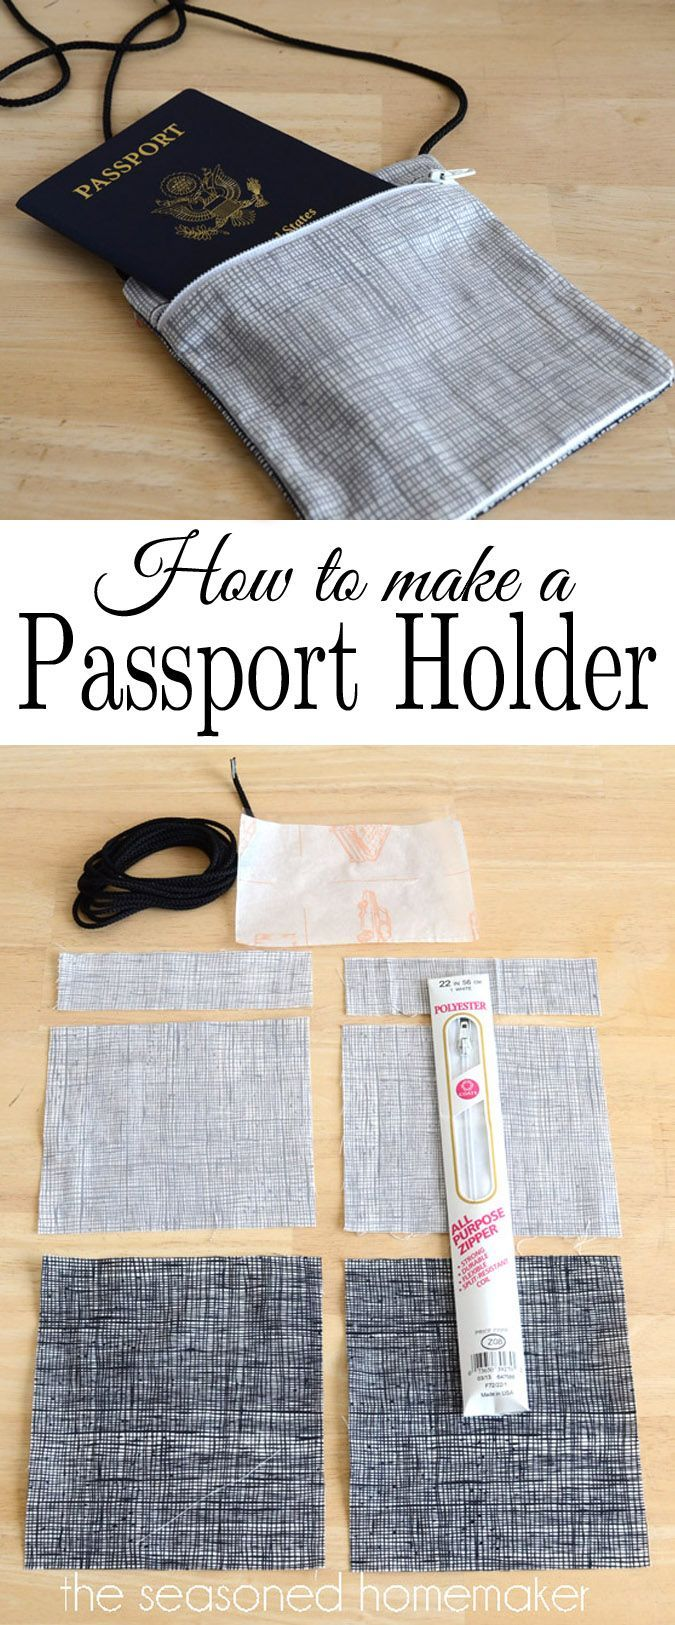 International travel can be a challenge, especially when you have to navigate foreign airports. I've created a simple Passport Holder with a lanyard so you can quickly get through airport security and on to your destination.